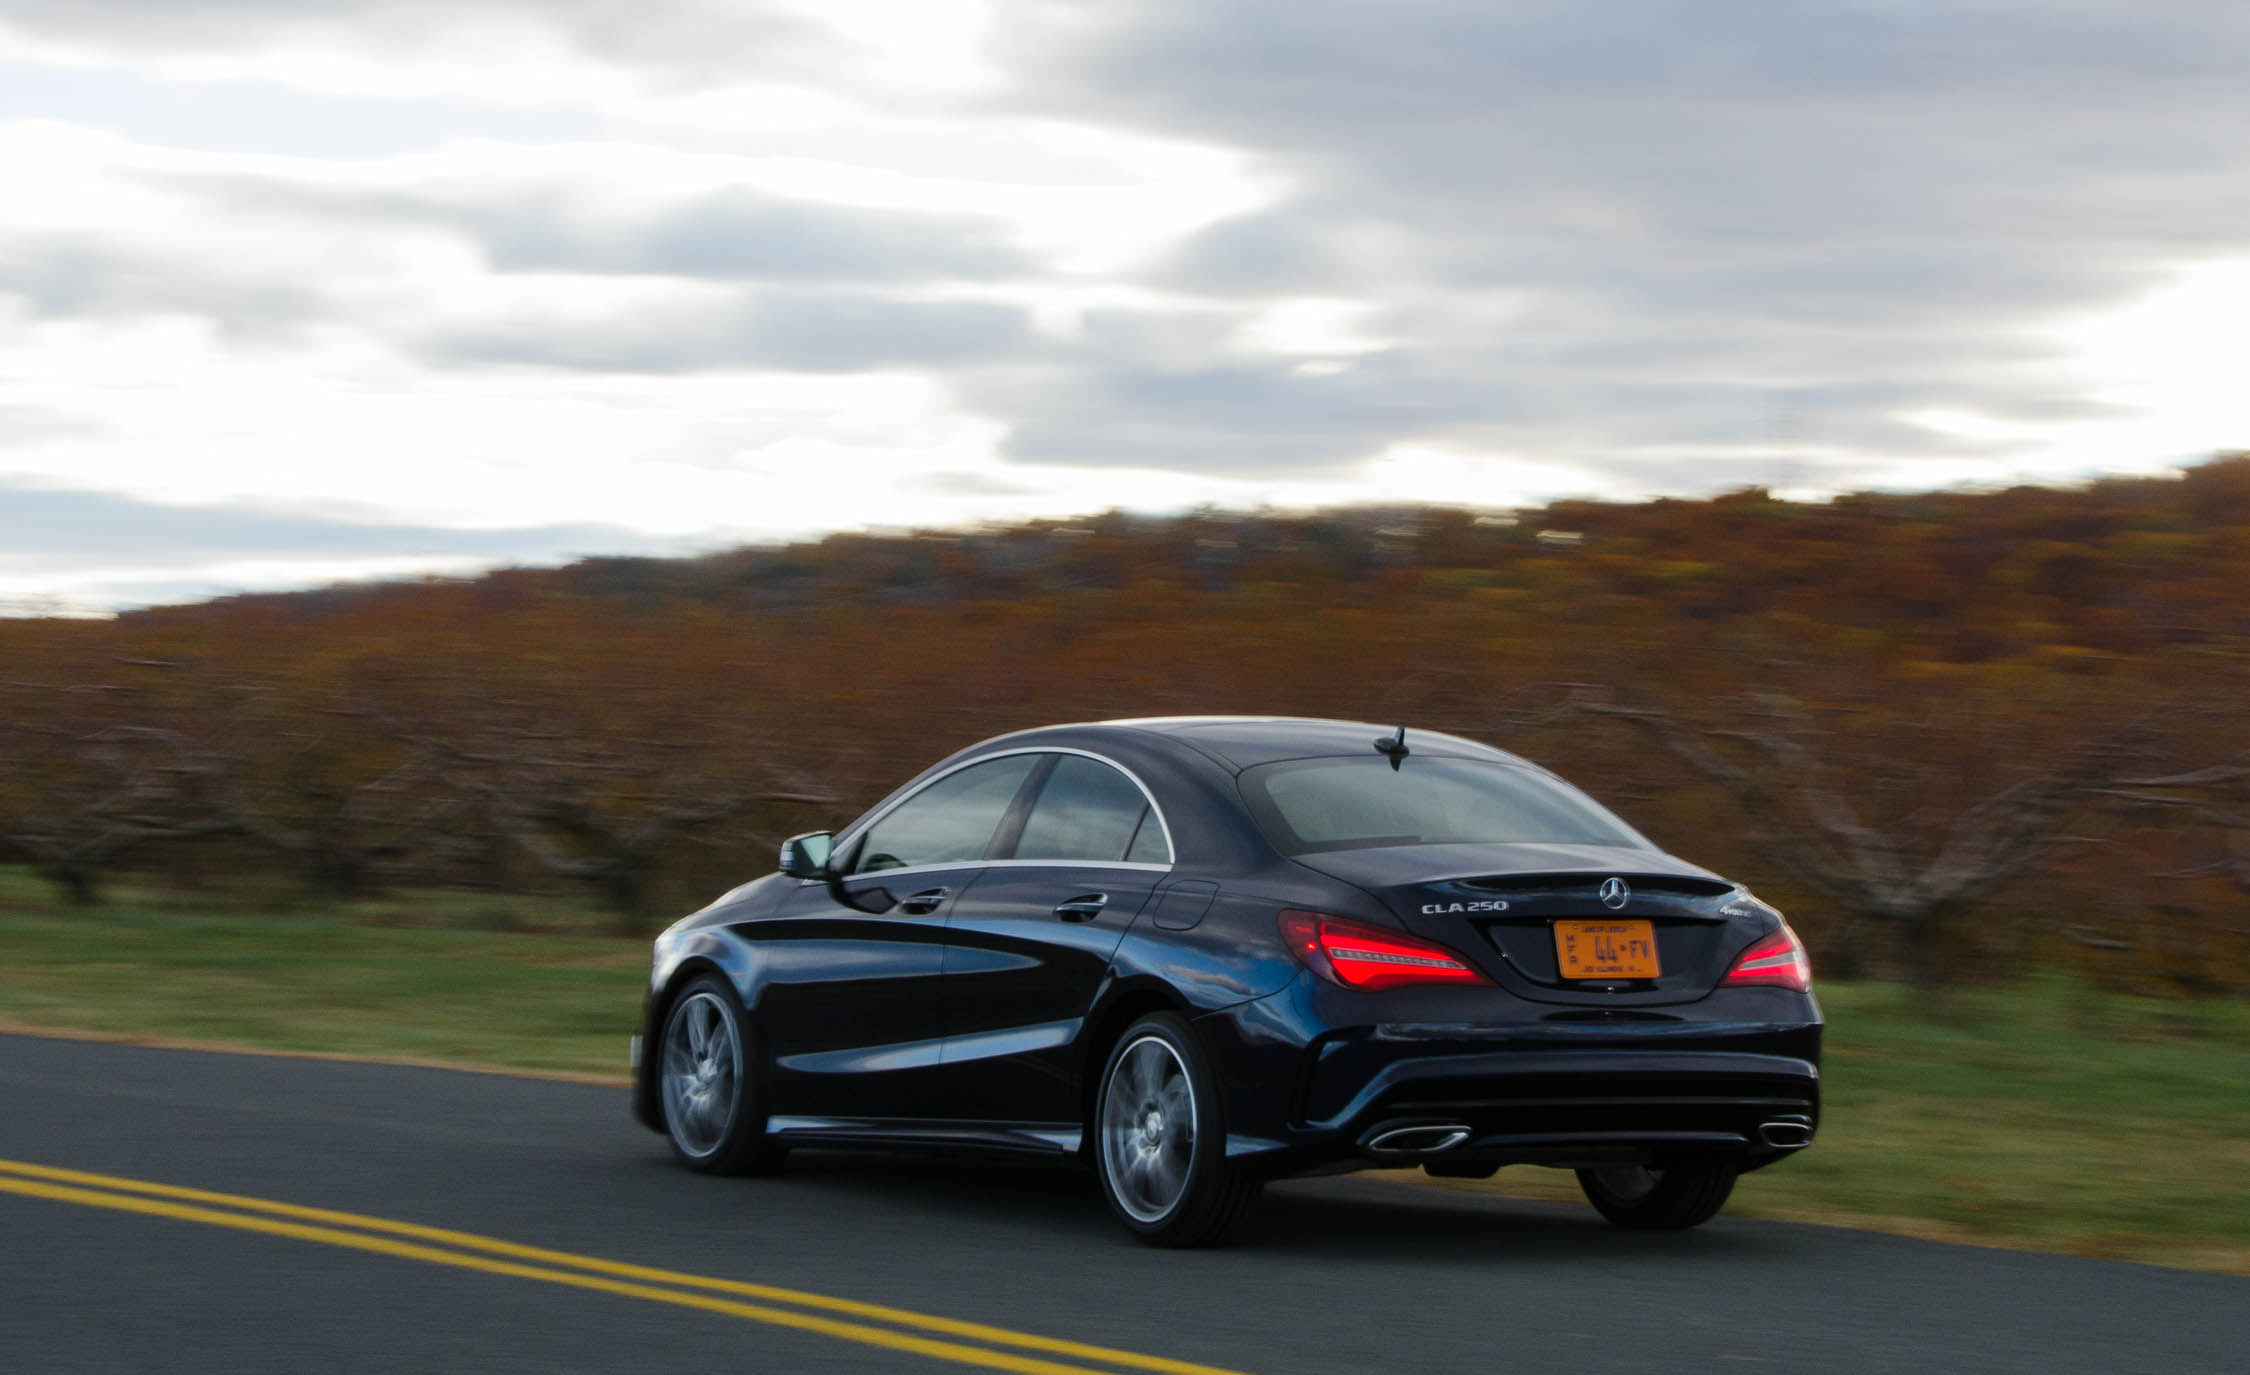 2017 Mercedes Benz CLA250 4MATIC Test Drive Side And Rear View (Photo 7 of 21)